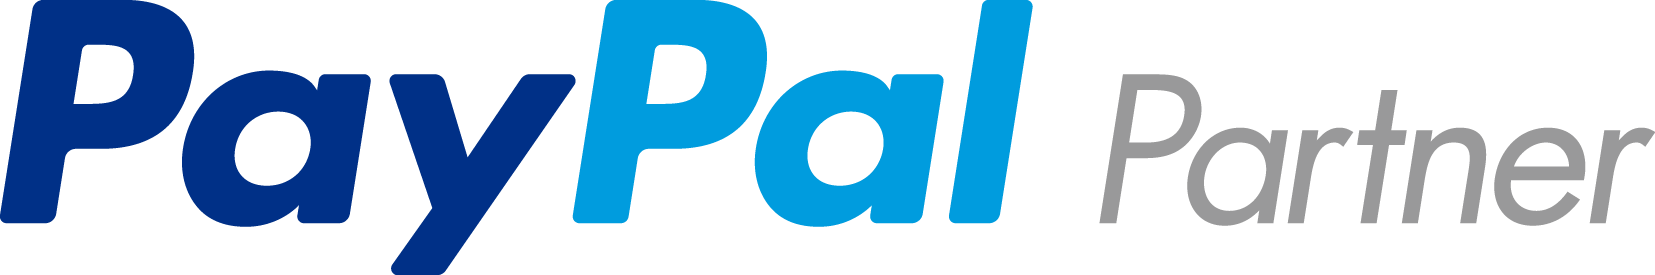 Paypal Official Partner